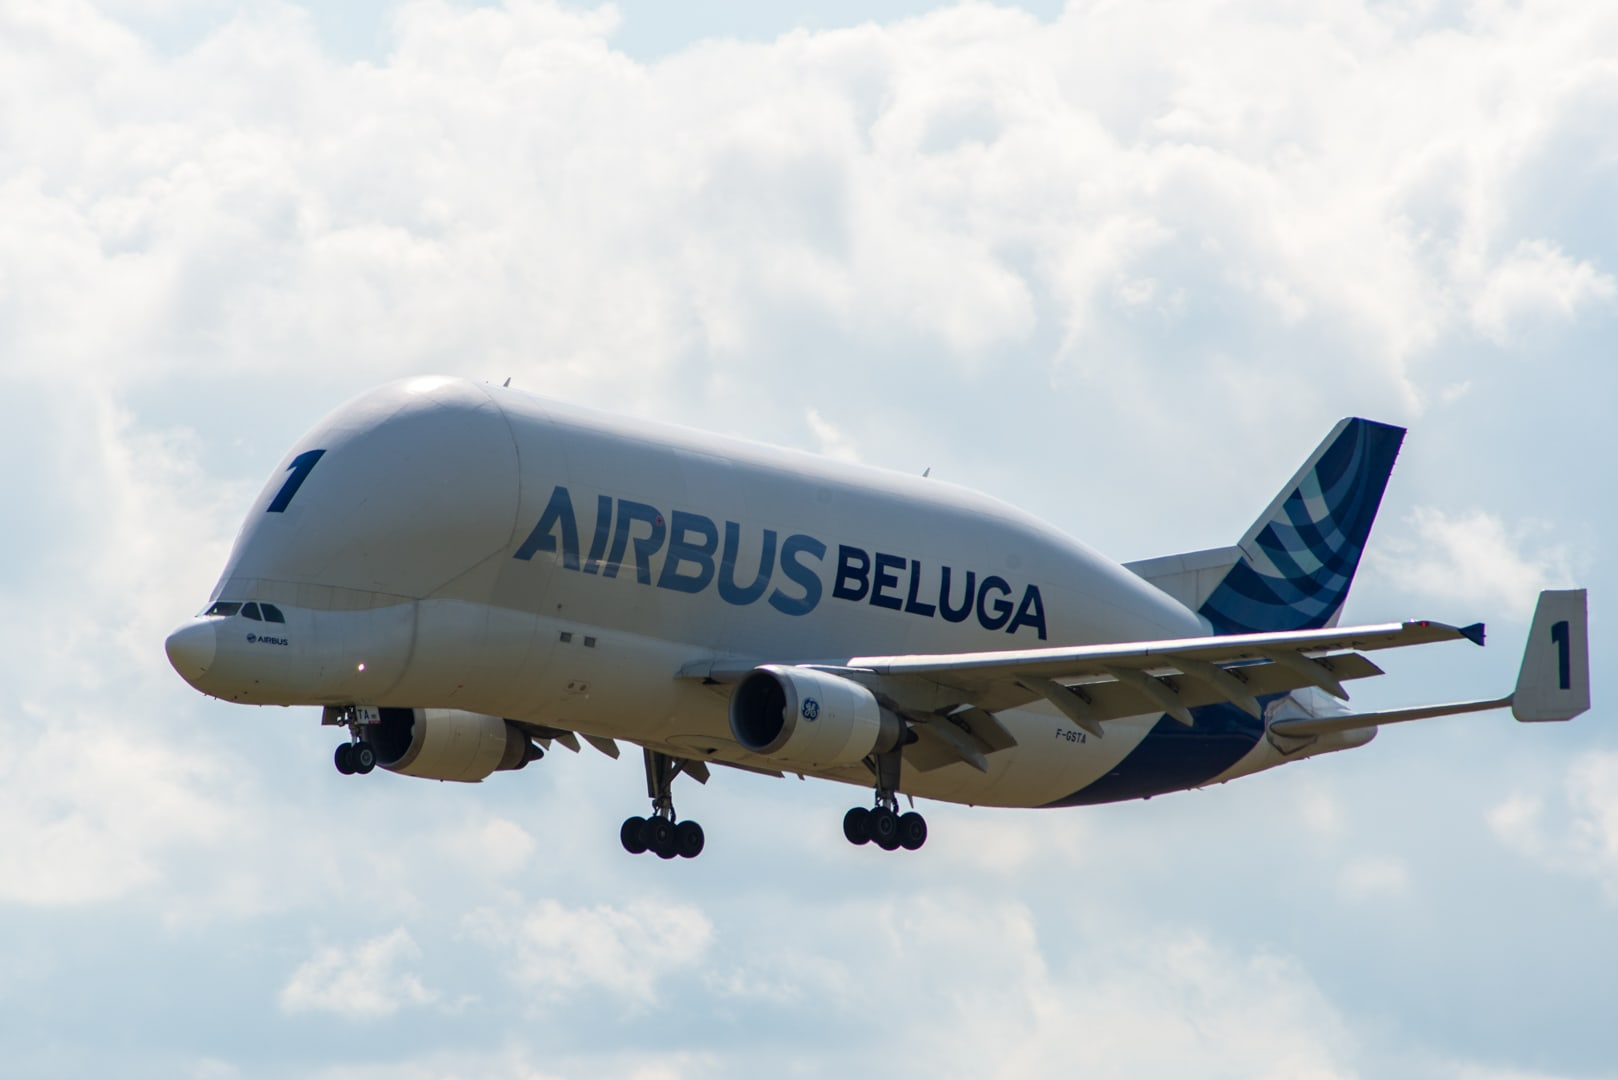 Photo d'avion le Beluga de Airbus lors du meeting aérien sur Toulouse ( Lherm) 1